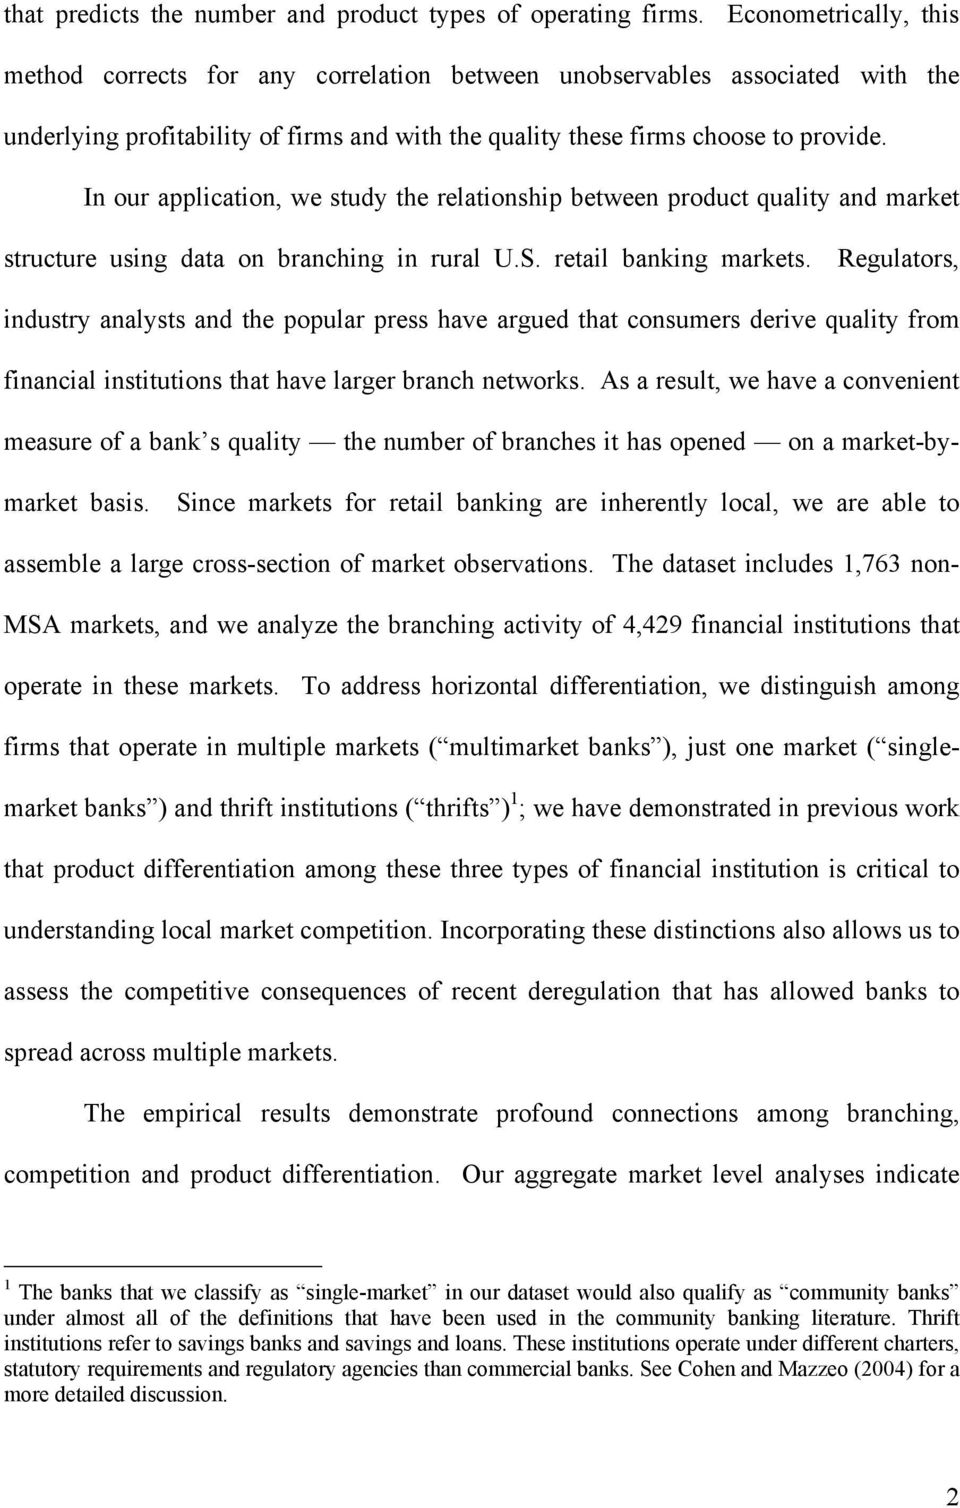 In our application, we study the relationship between product quality and market structure using data on branching in rural U.S. retail banking markets.